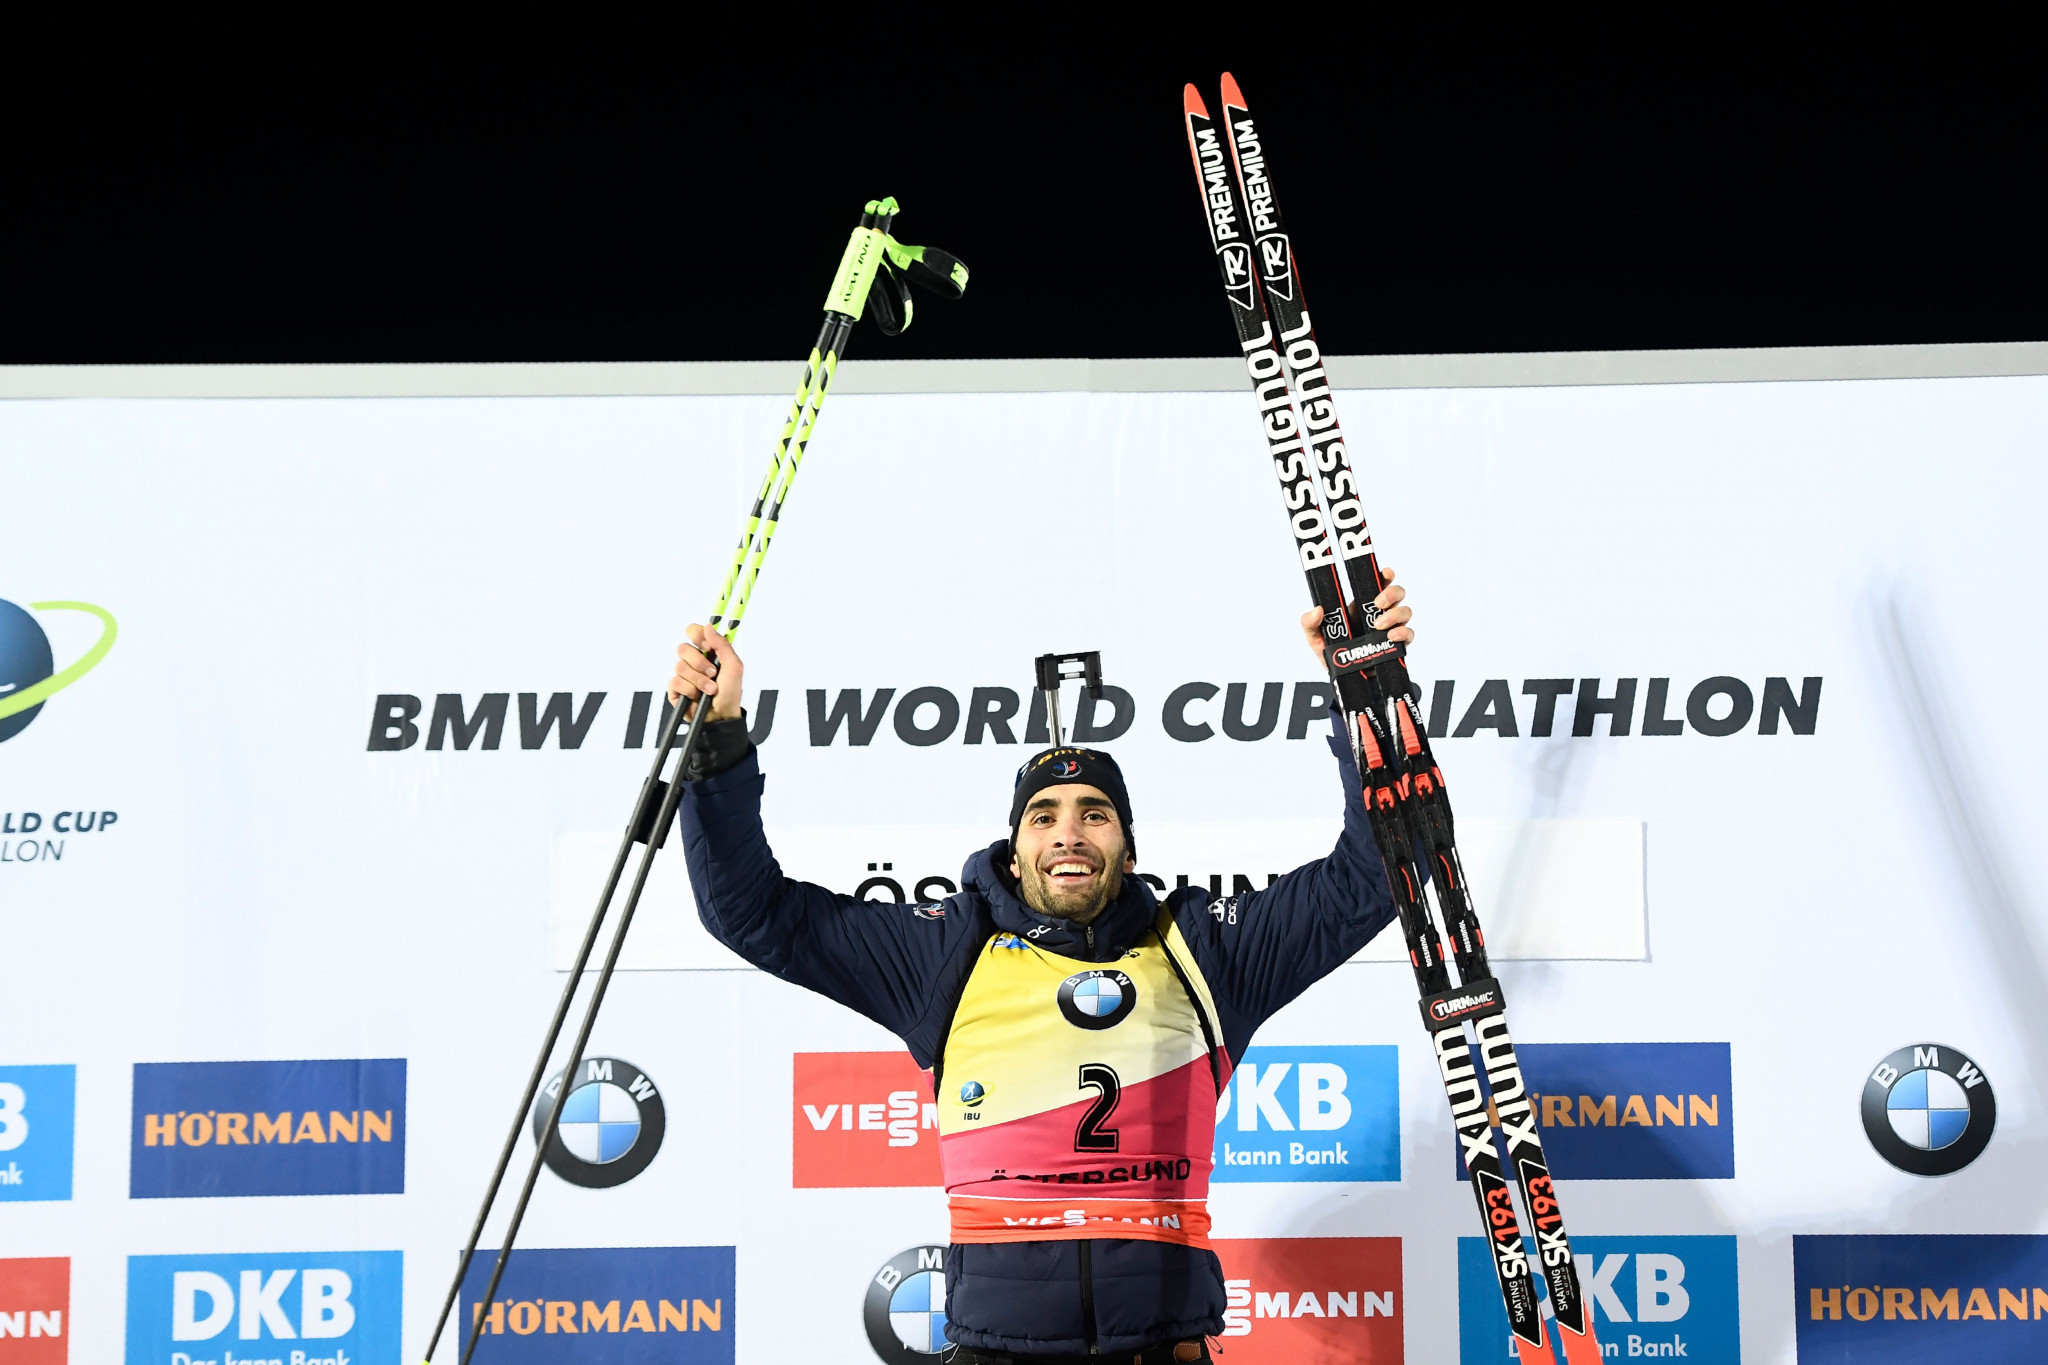 Defending men's champion Martin Fourcade returned to form with his first victory of the season ©Getty Images